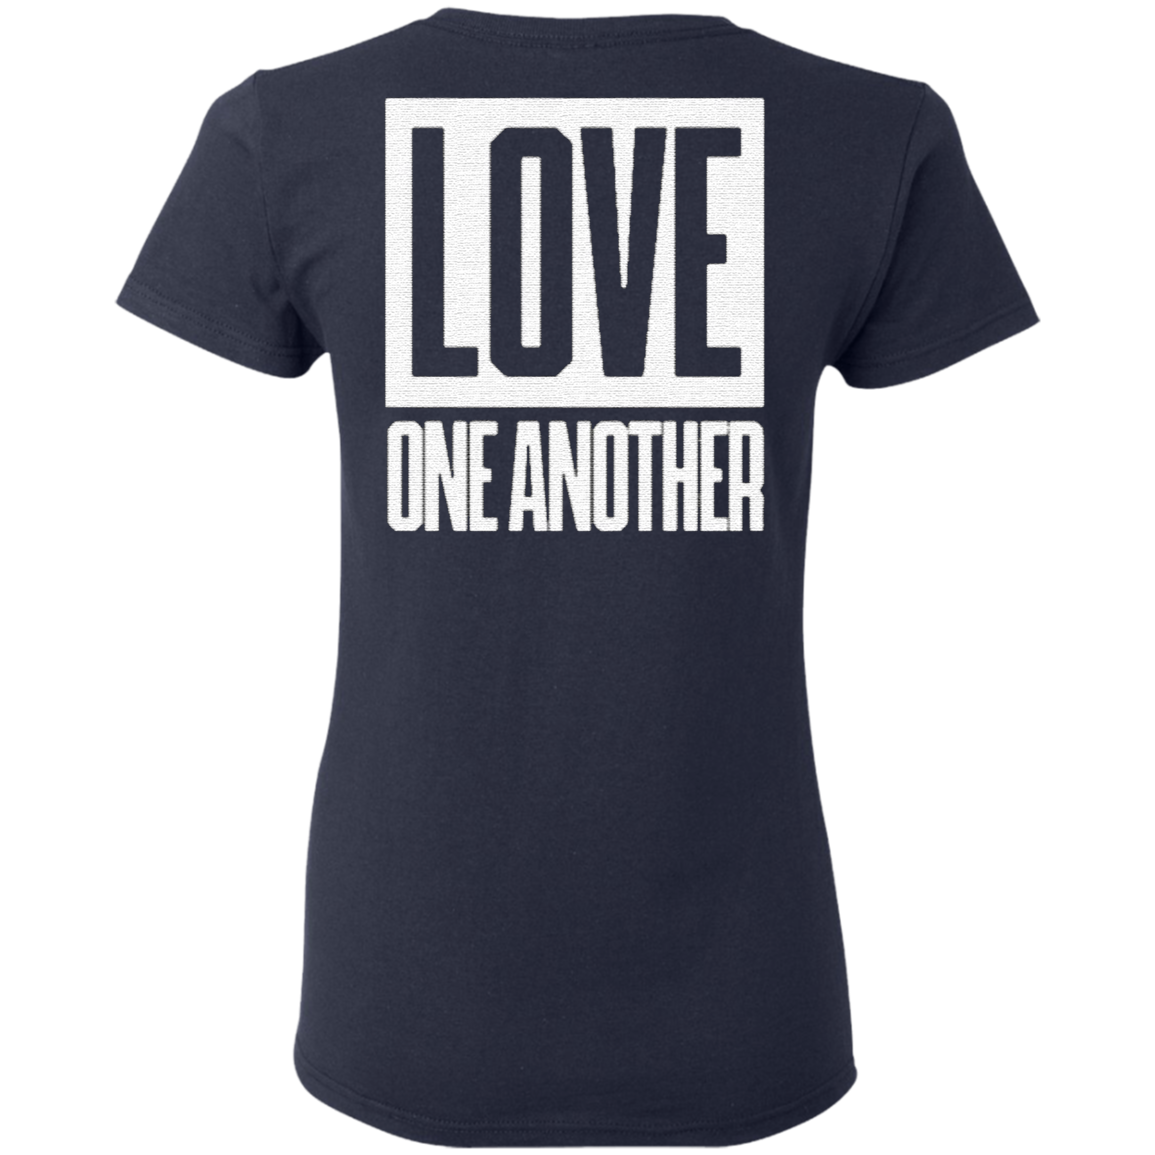 Byu love one another T shirt